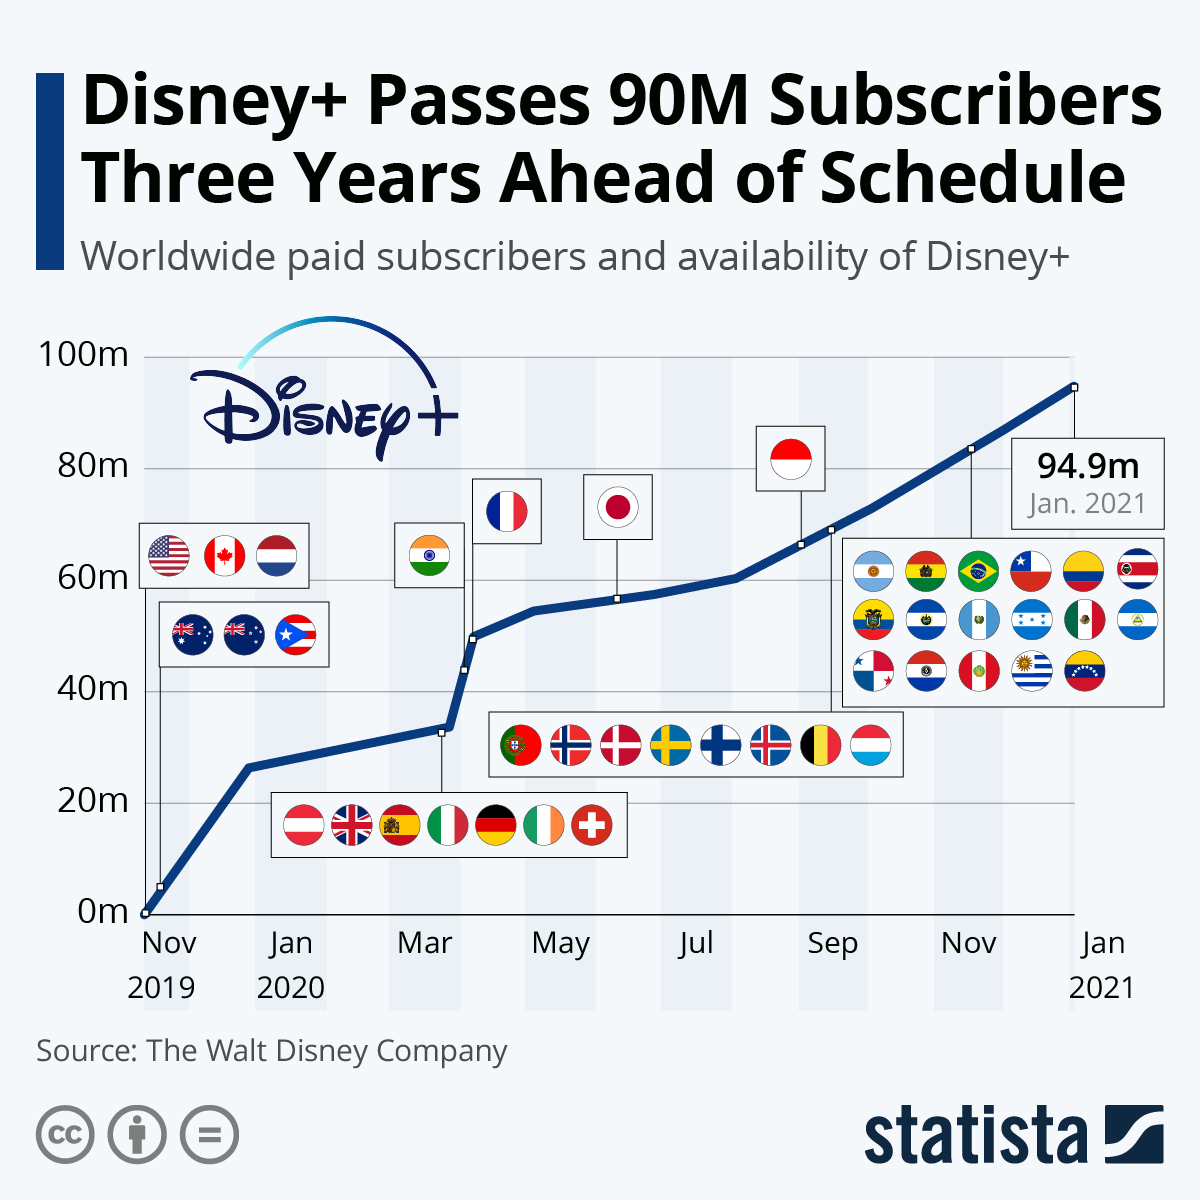 Disney goes over 90M subscribers, three years in advance